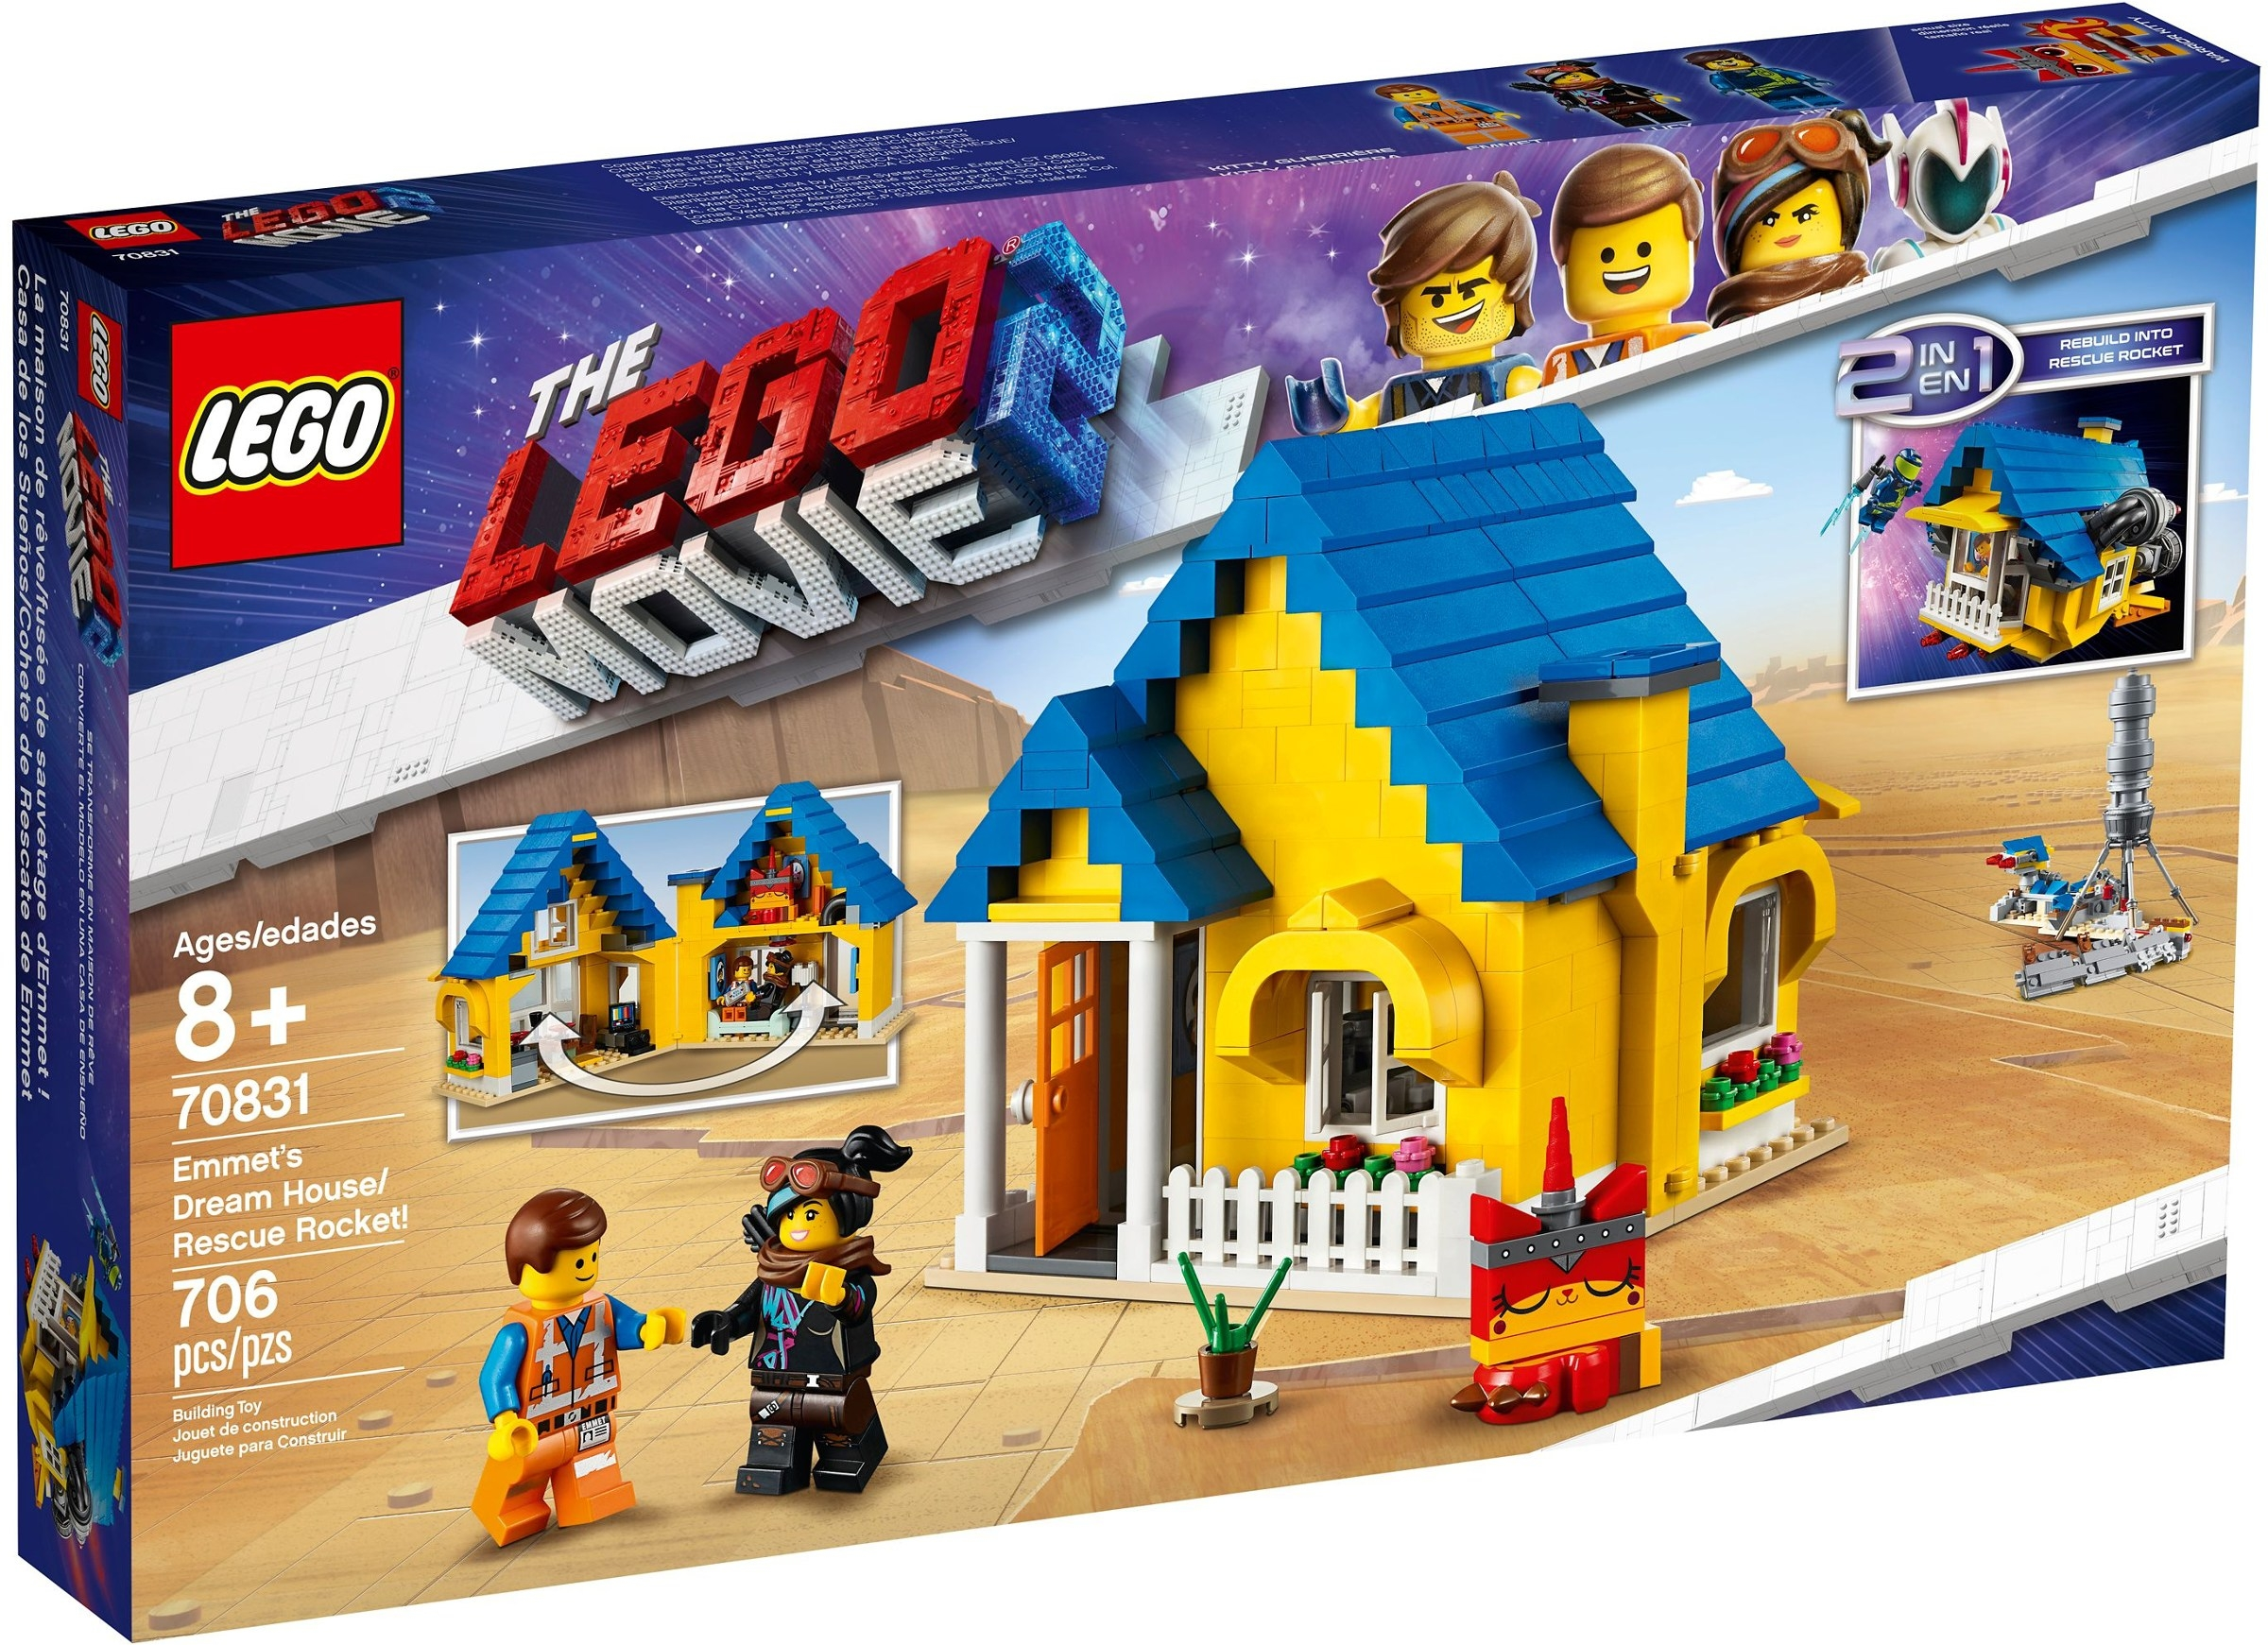 Lego Movie Emmets Dream House/rescue Rocket